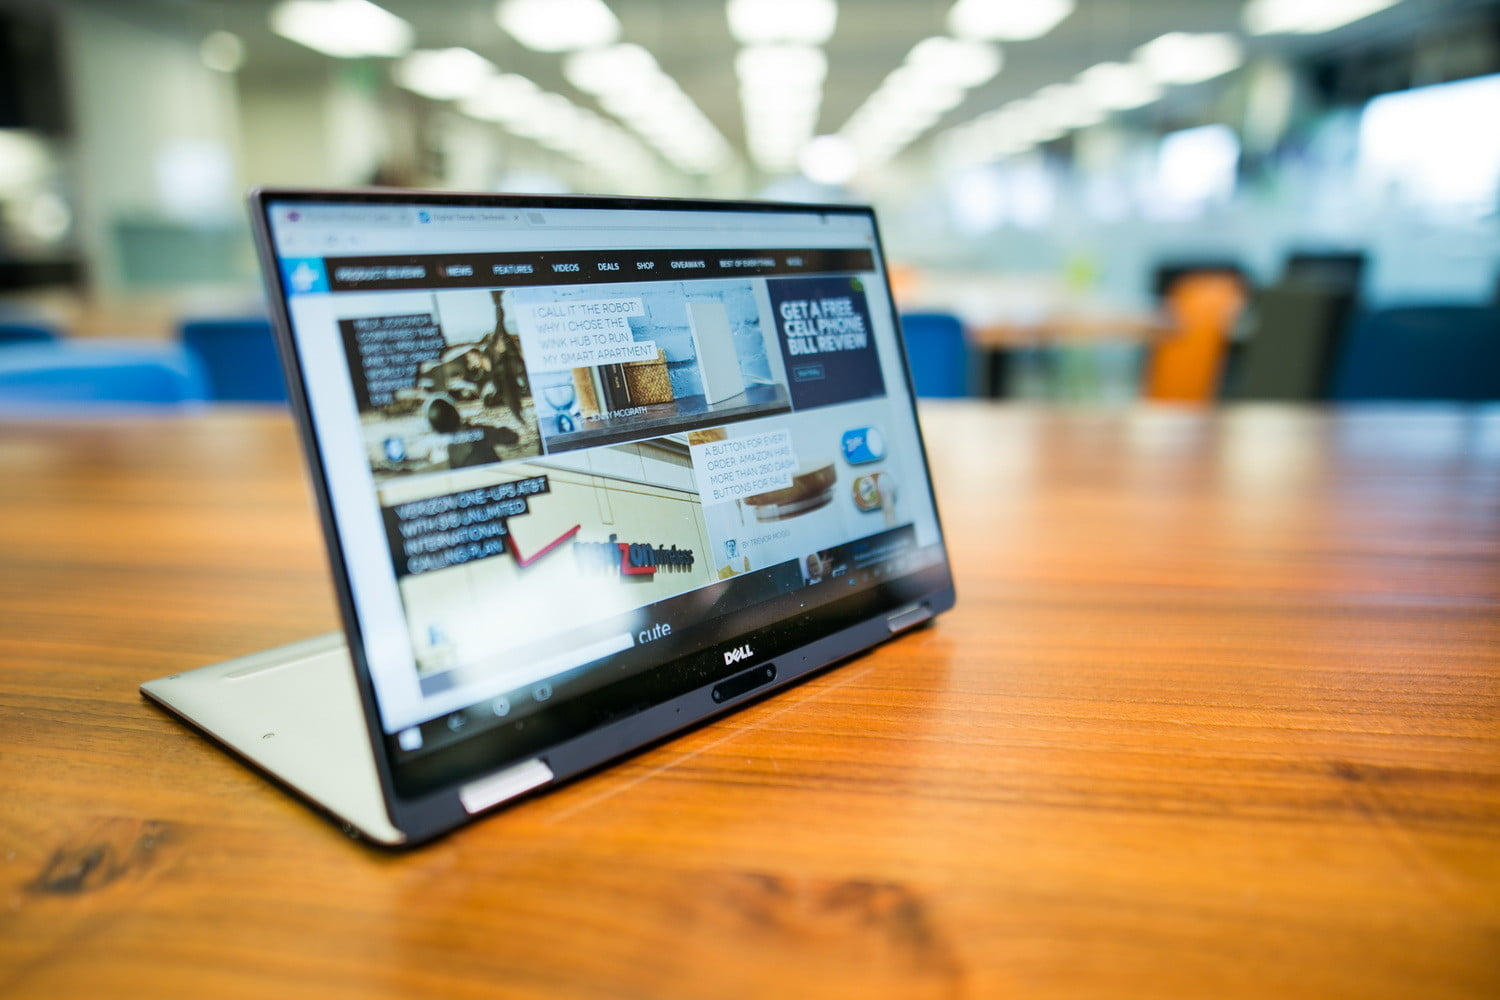 dell xps 13 2 in 1 review 2018